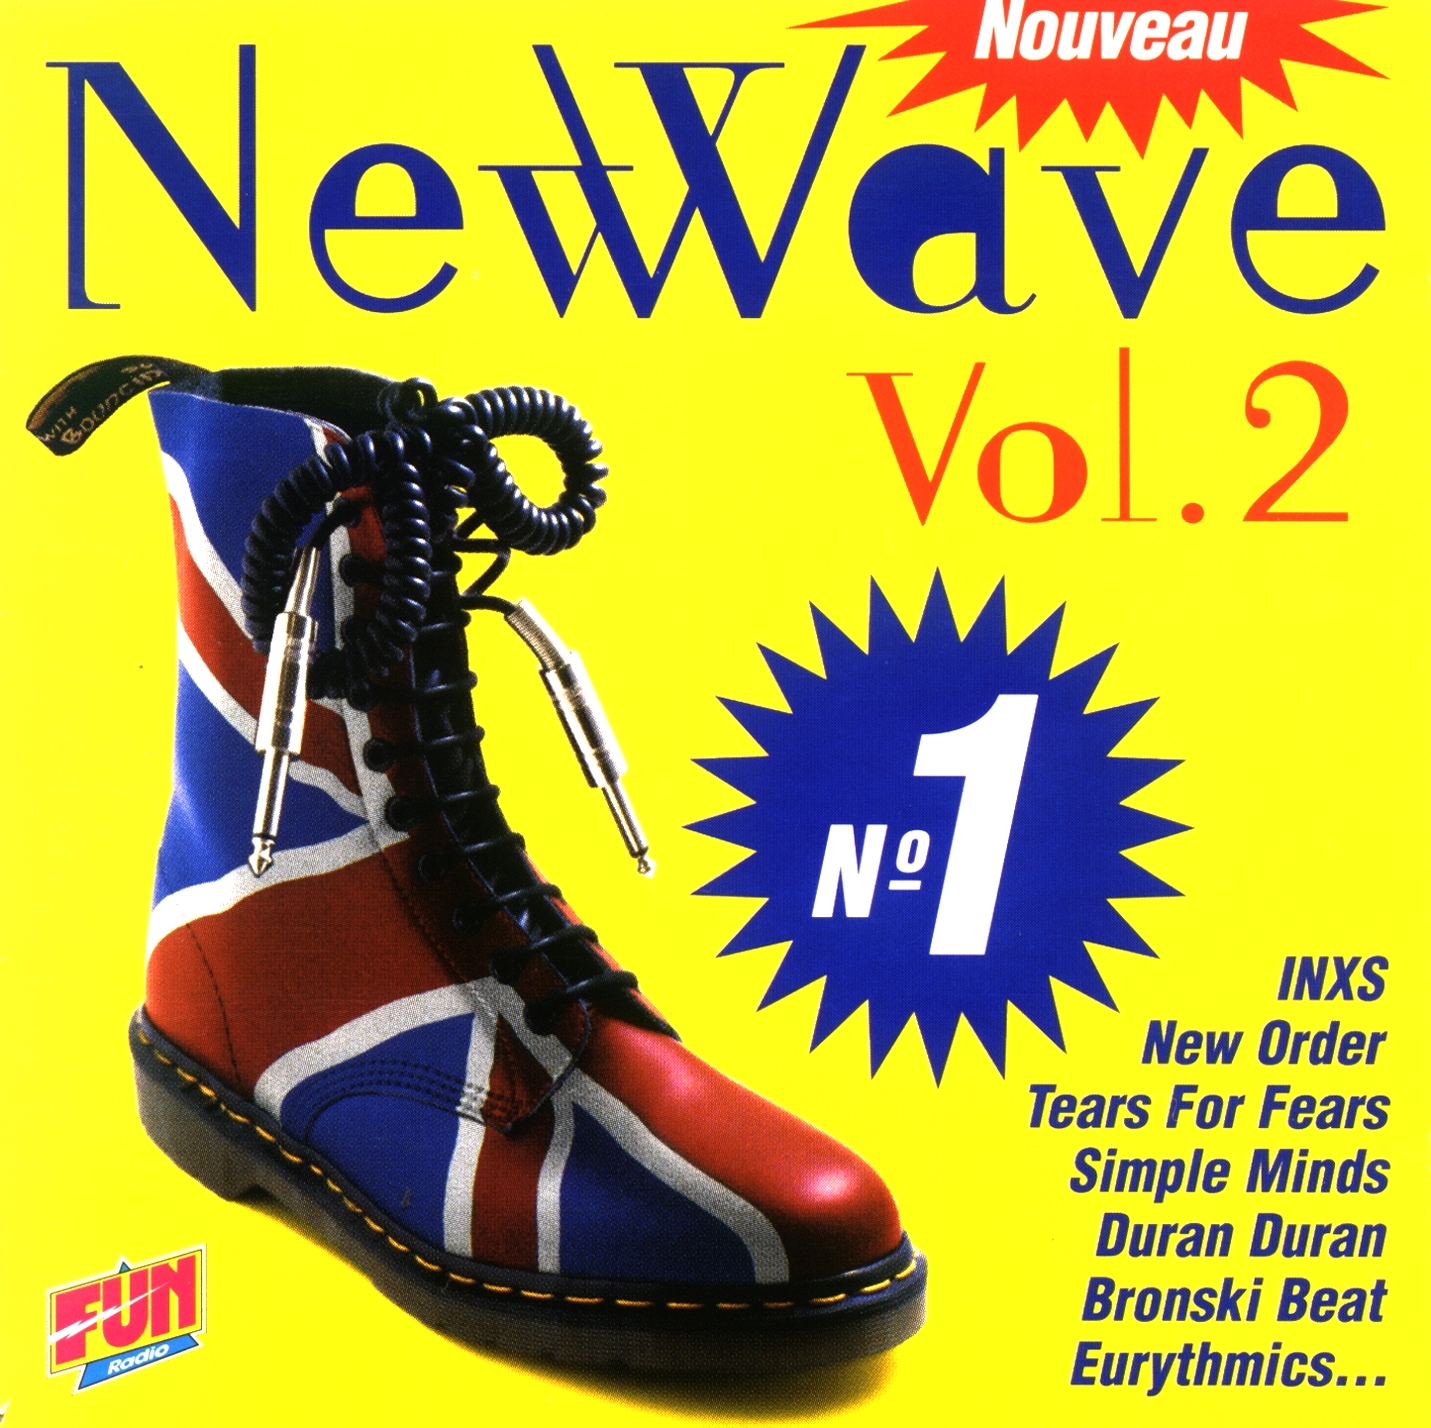 New Wave N°1 Vol.2 [Multi]